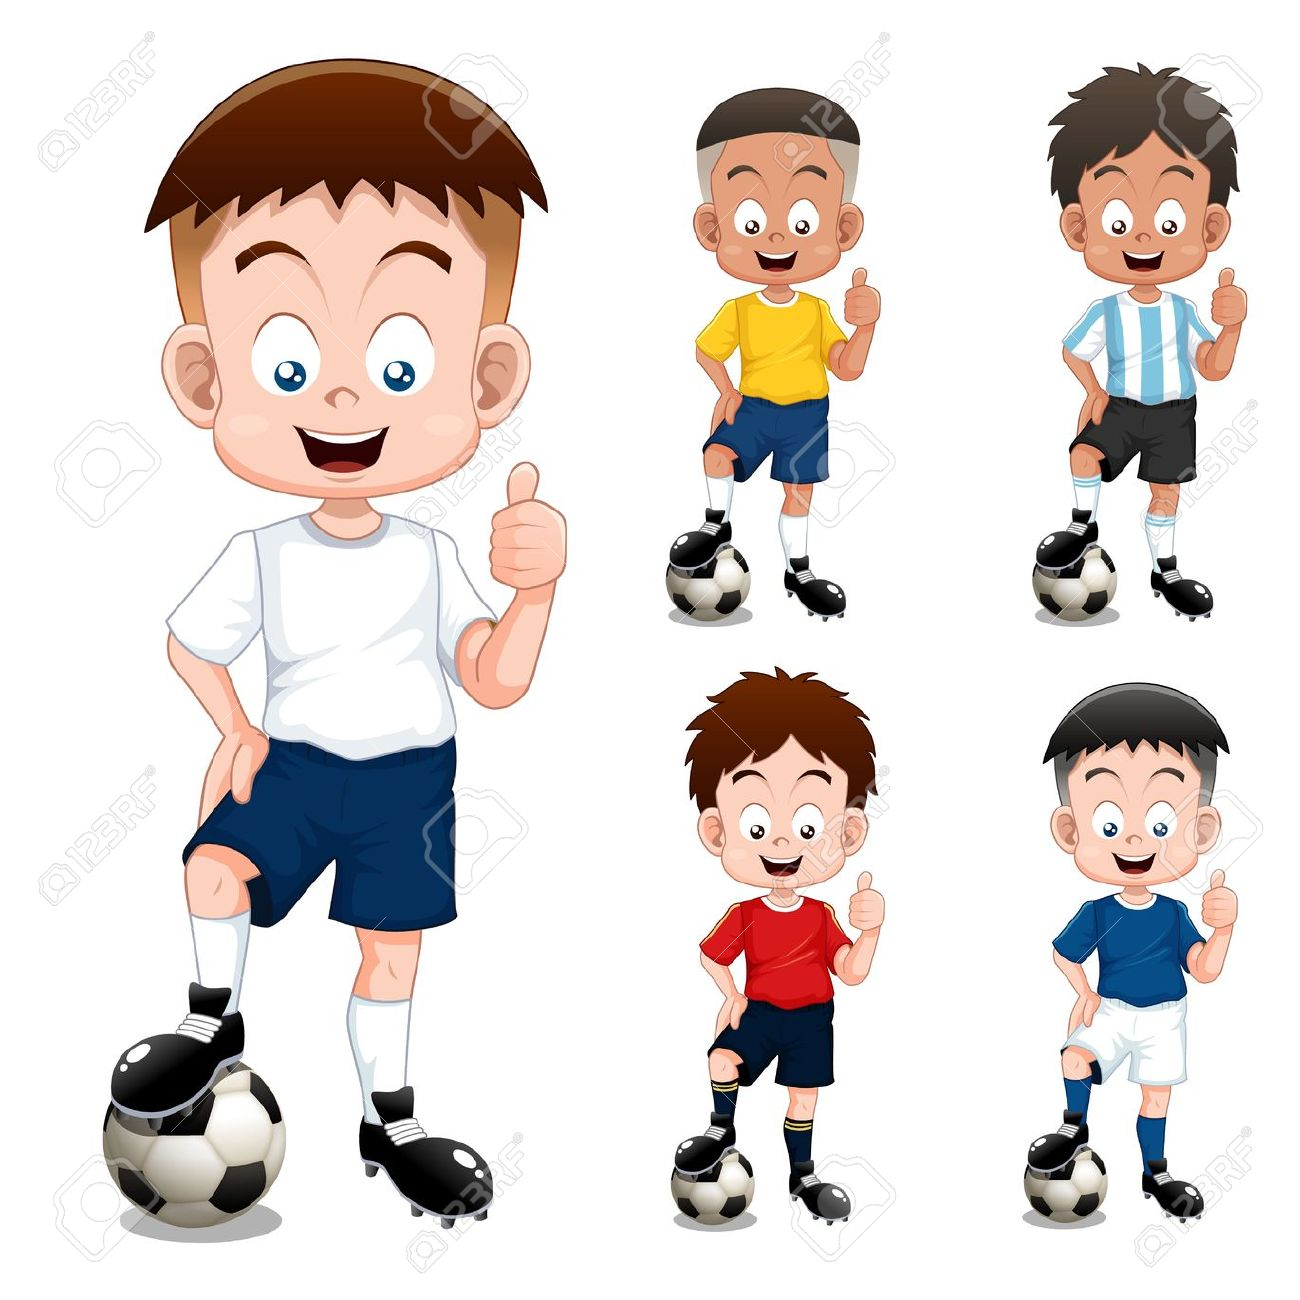 Boy valentine soccer clipart vector royalty free Boy valentine soccer clipart - ClipartFox vector royalty free